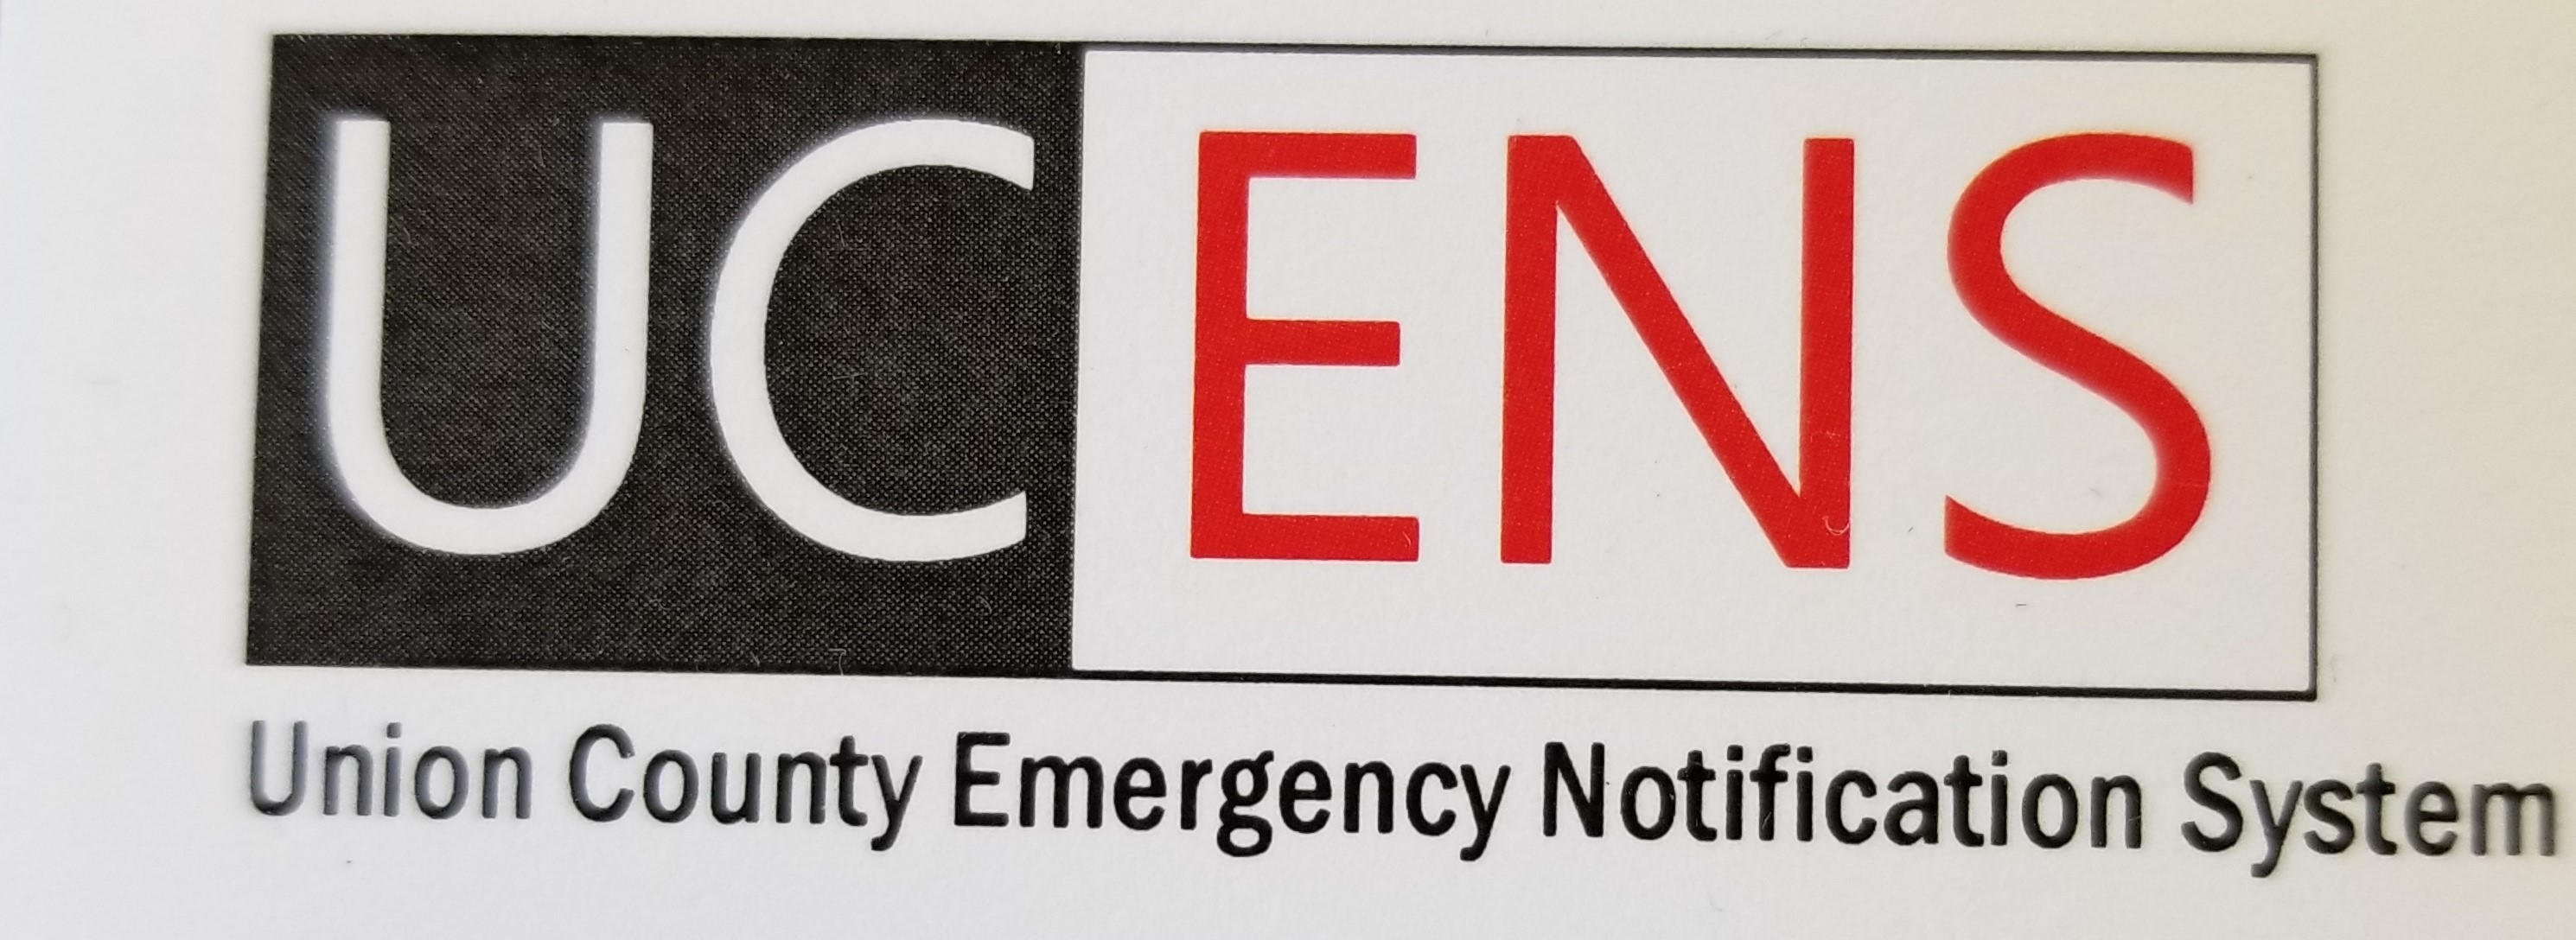 Emergency Notification Alerts